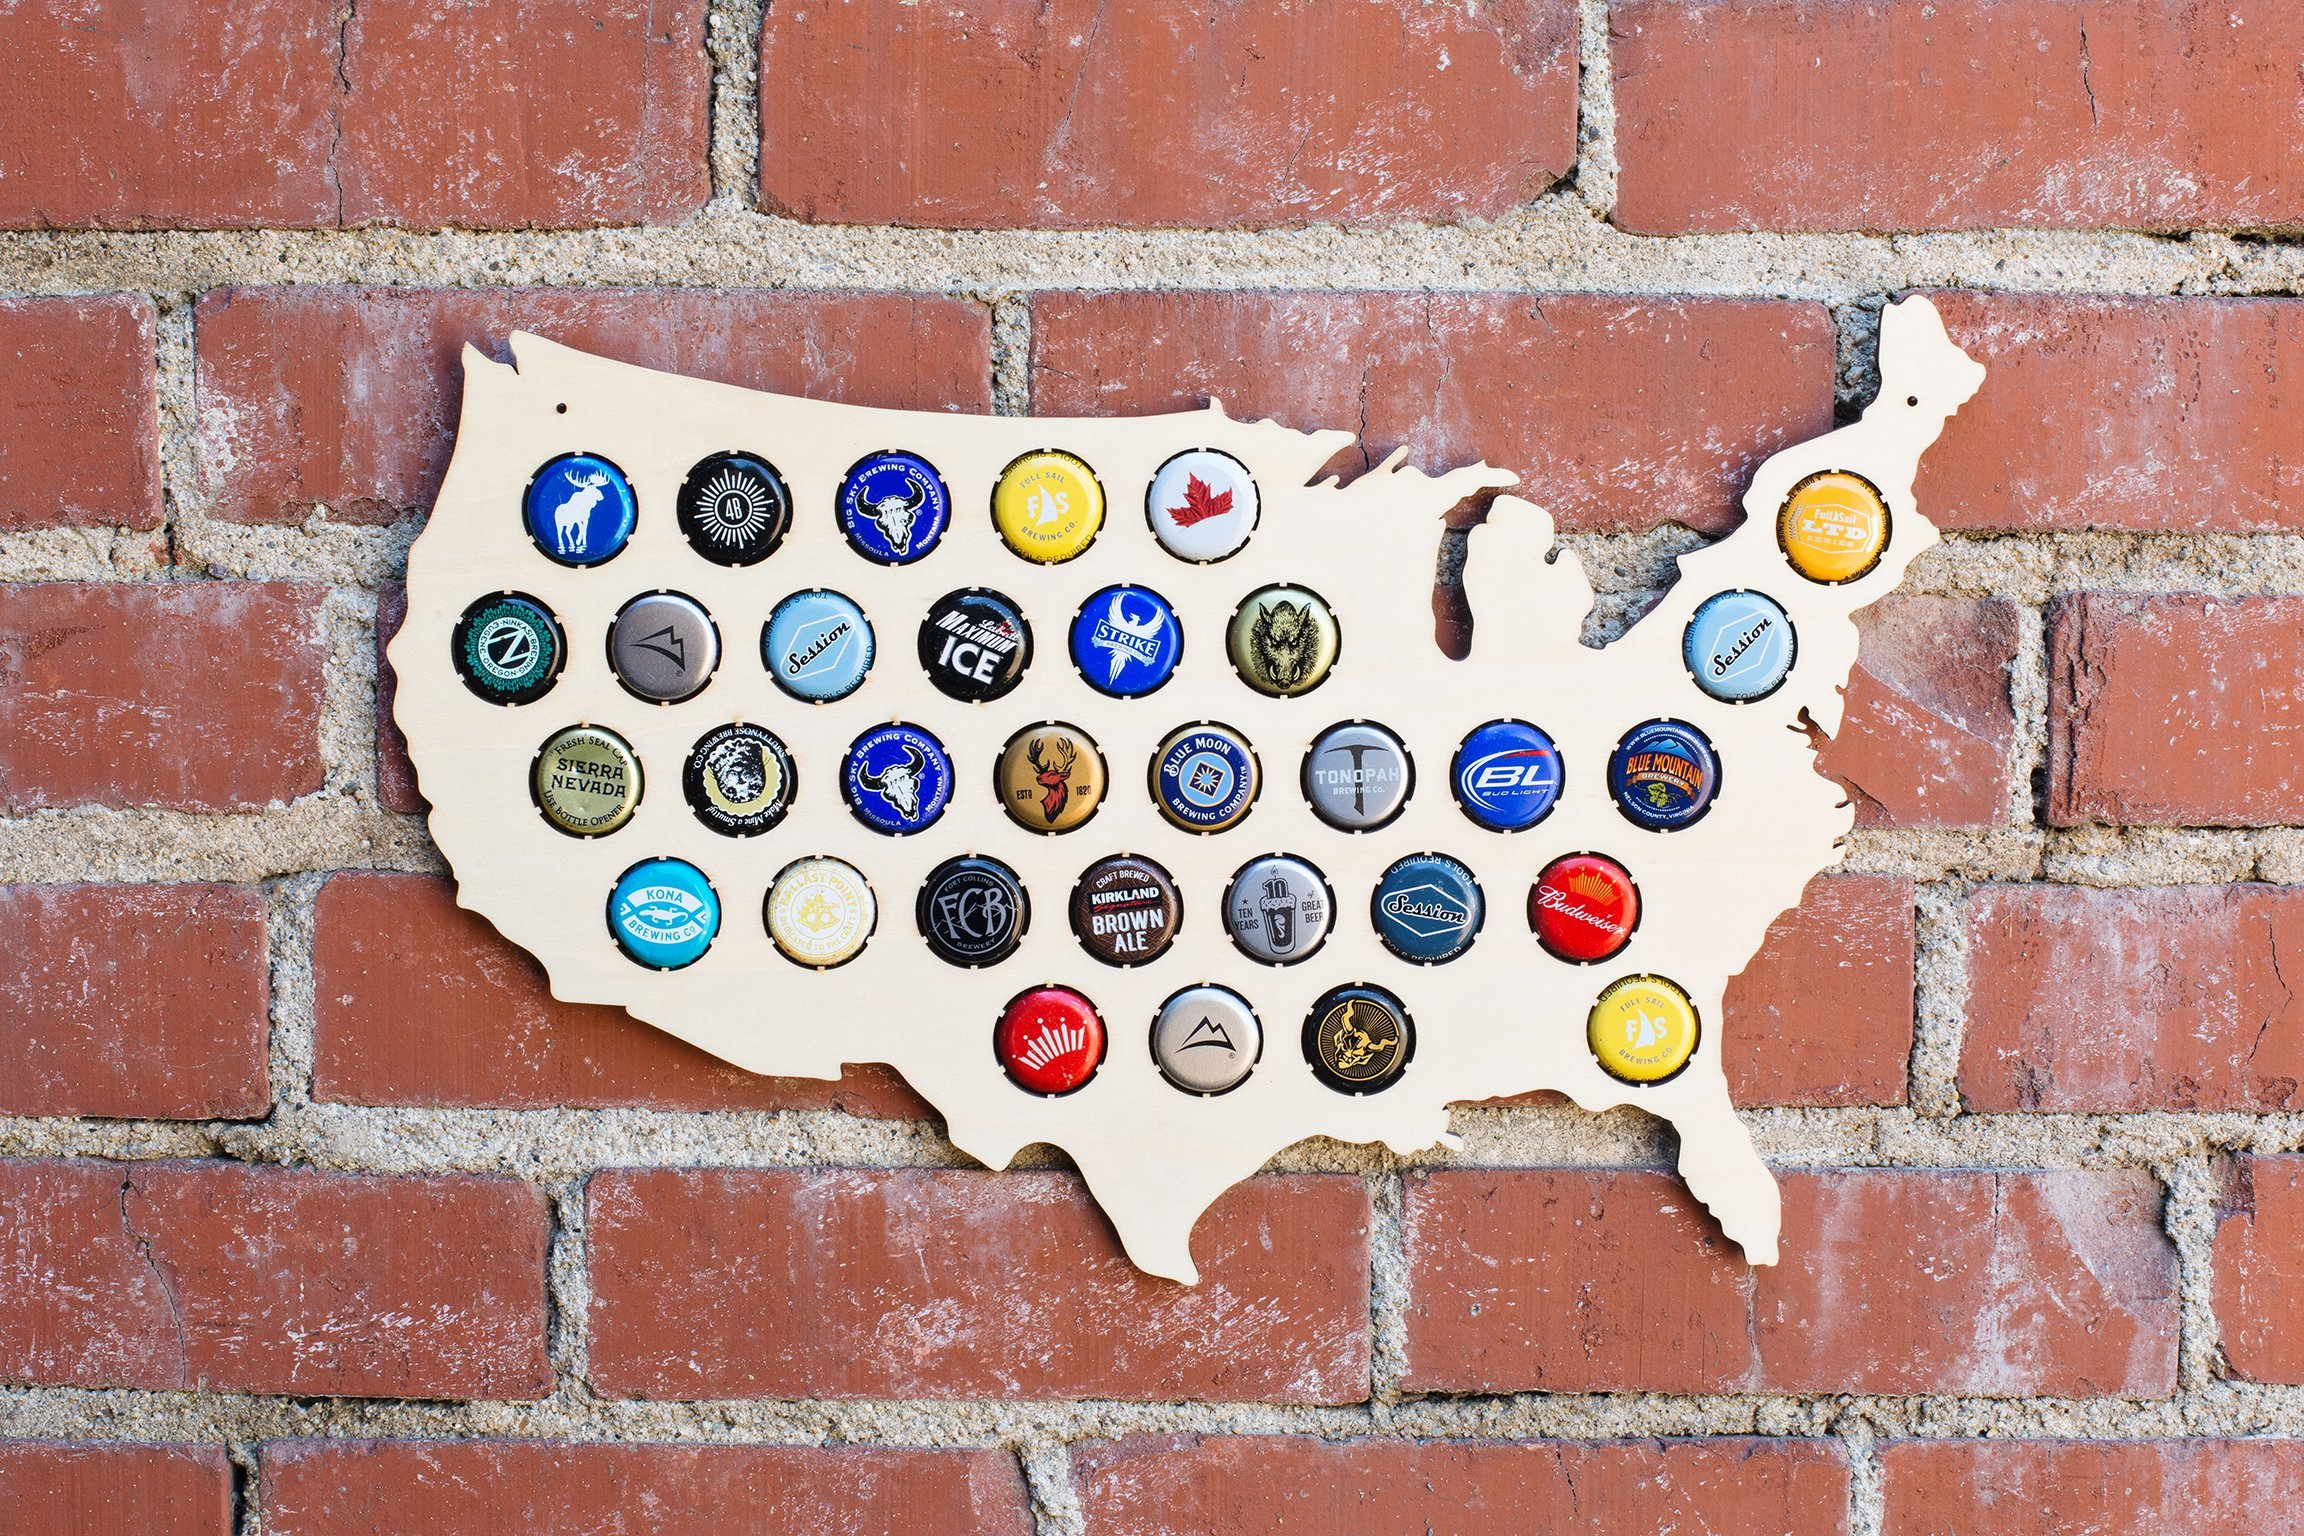 USA Beer Cap Map - Holds 32 Craft Beer Bottle Caps (Small)